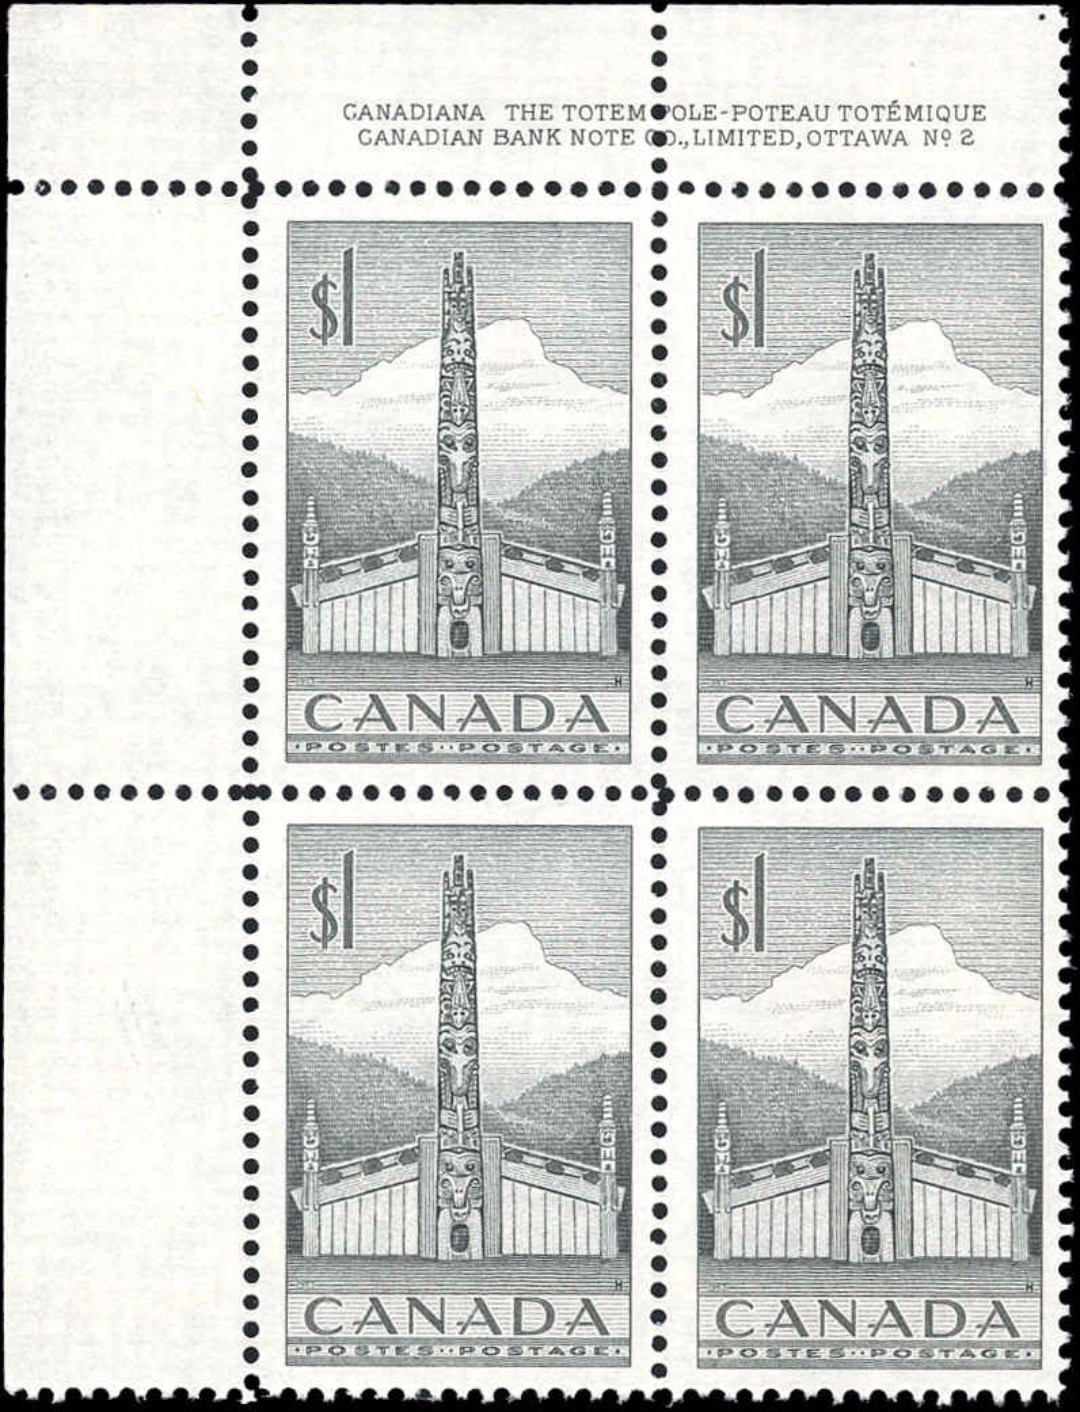 Canada #321, Totem Pole Issue, F-VF, MNH